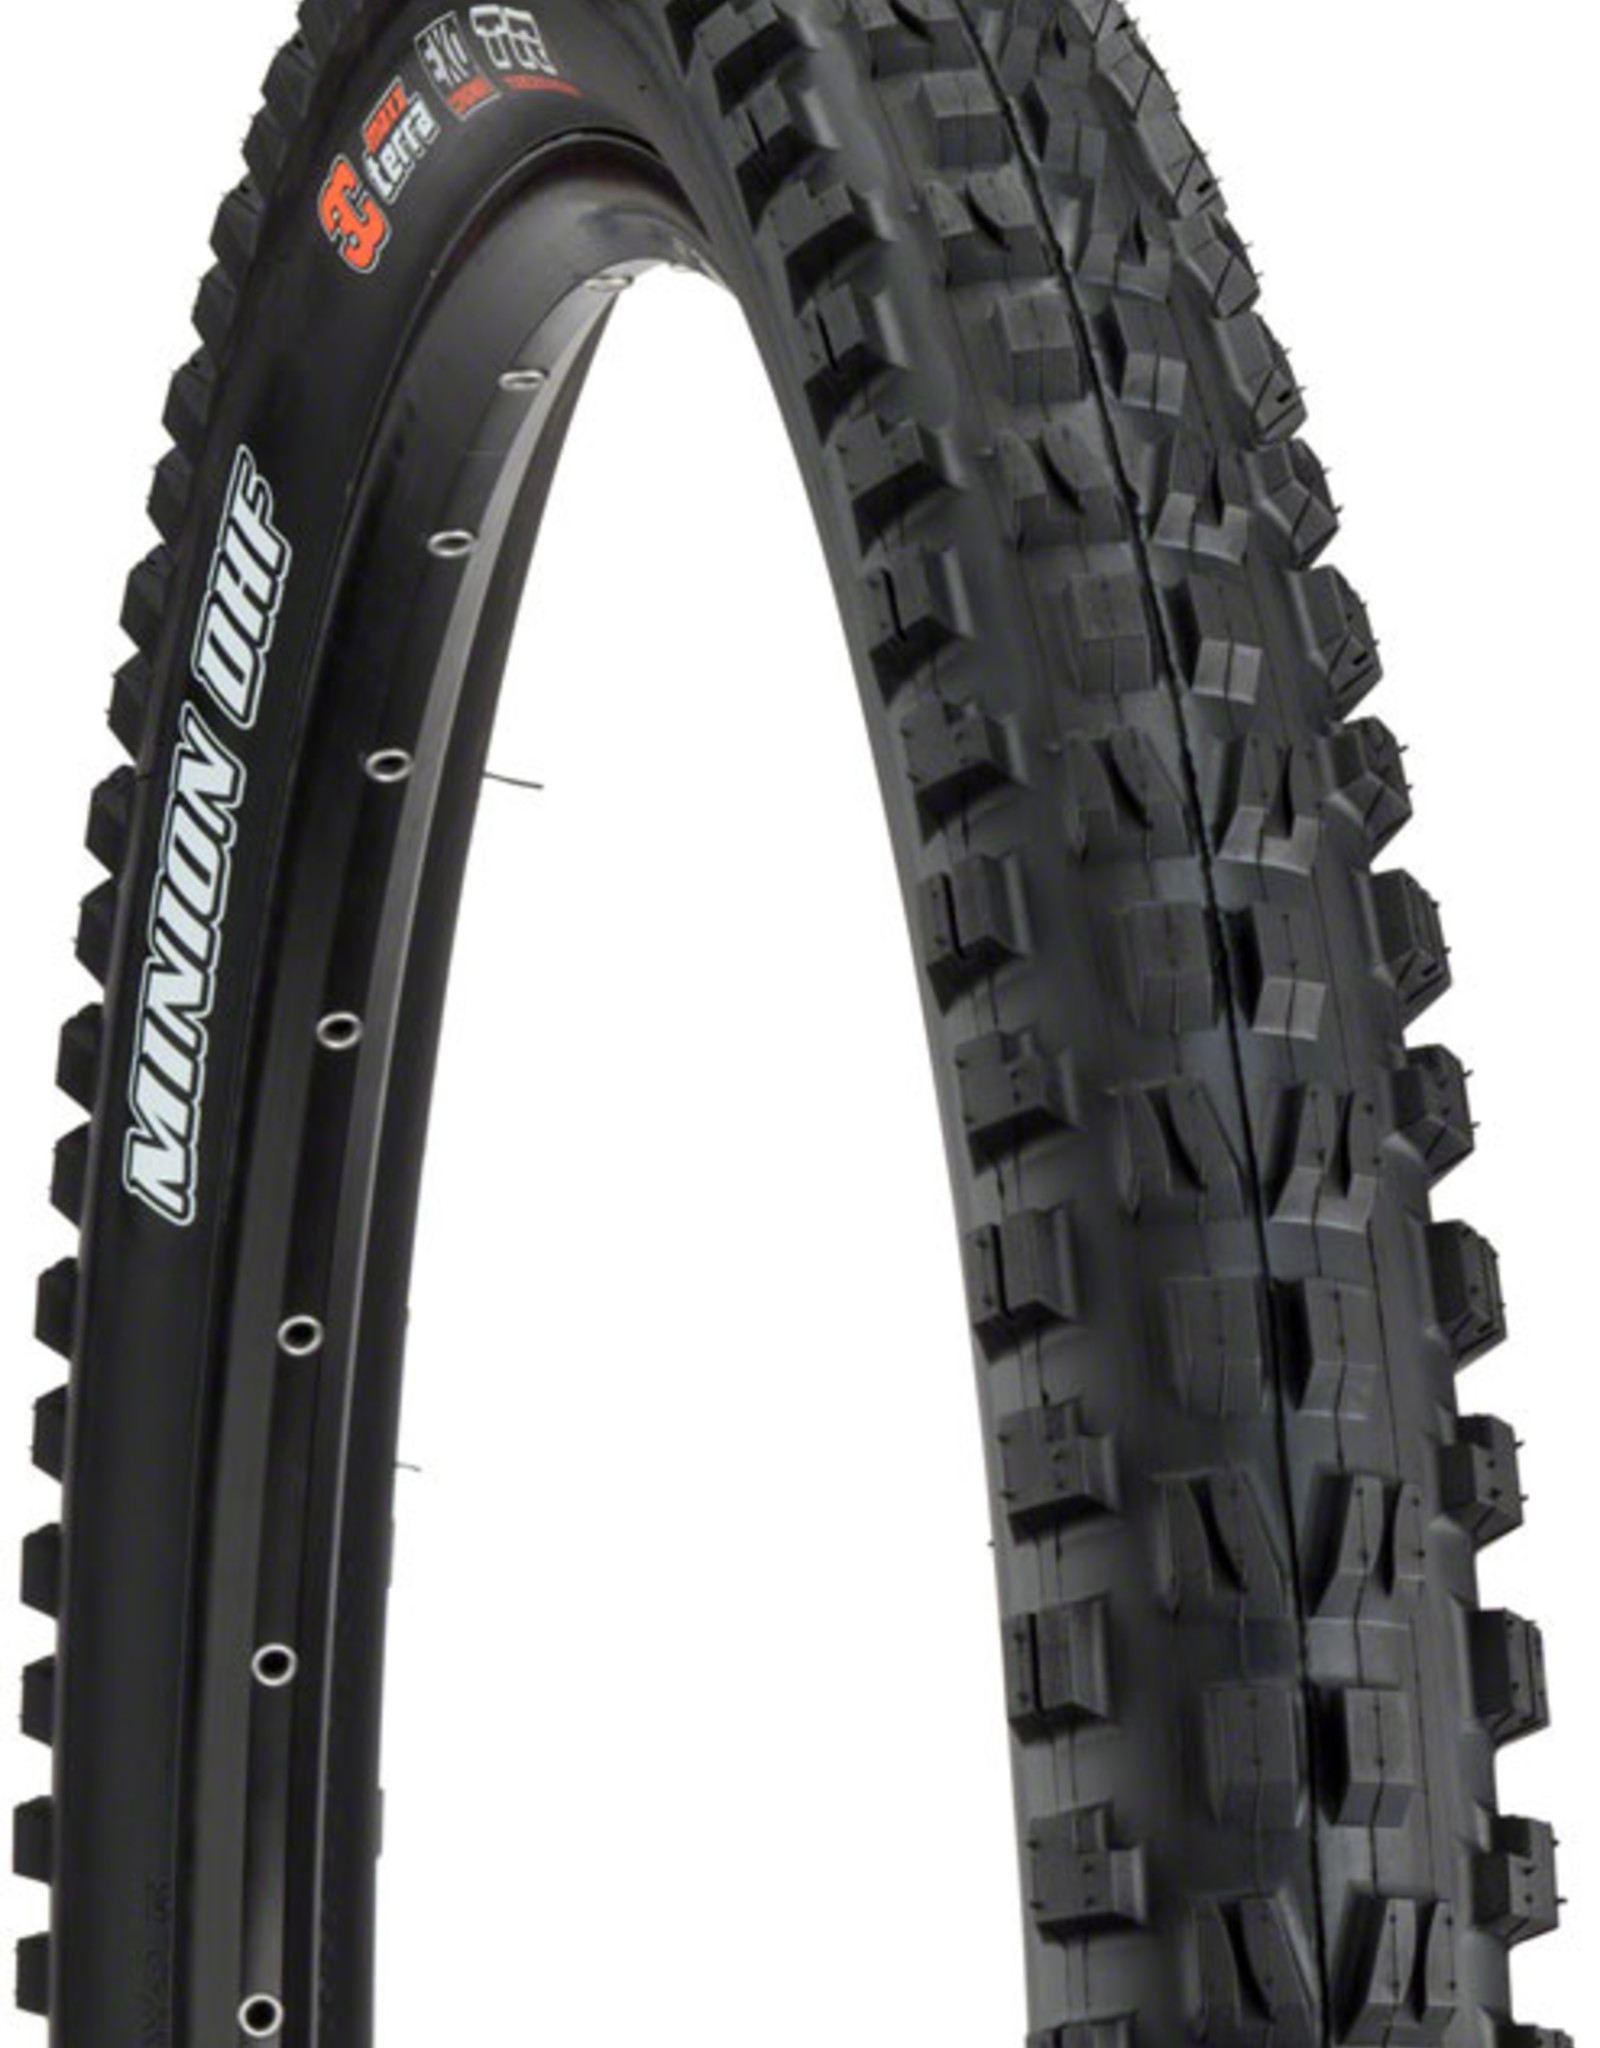 Maxxis Minion DHF Tire - 27.5 x 2.8, Tubeless, Folding, Black, 3C Maxx Terra, EXO